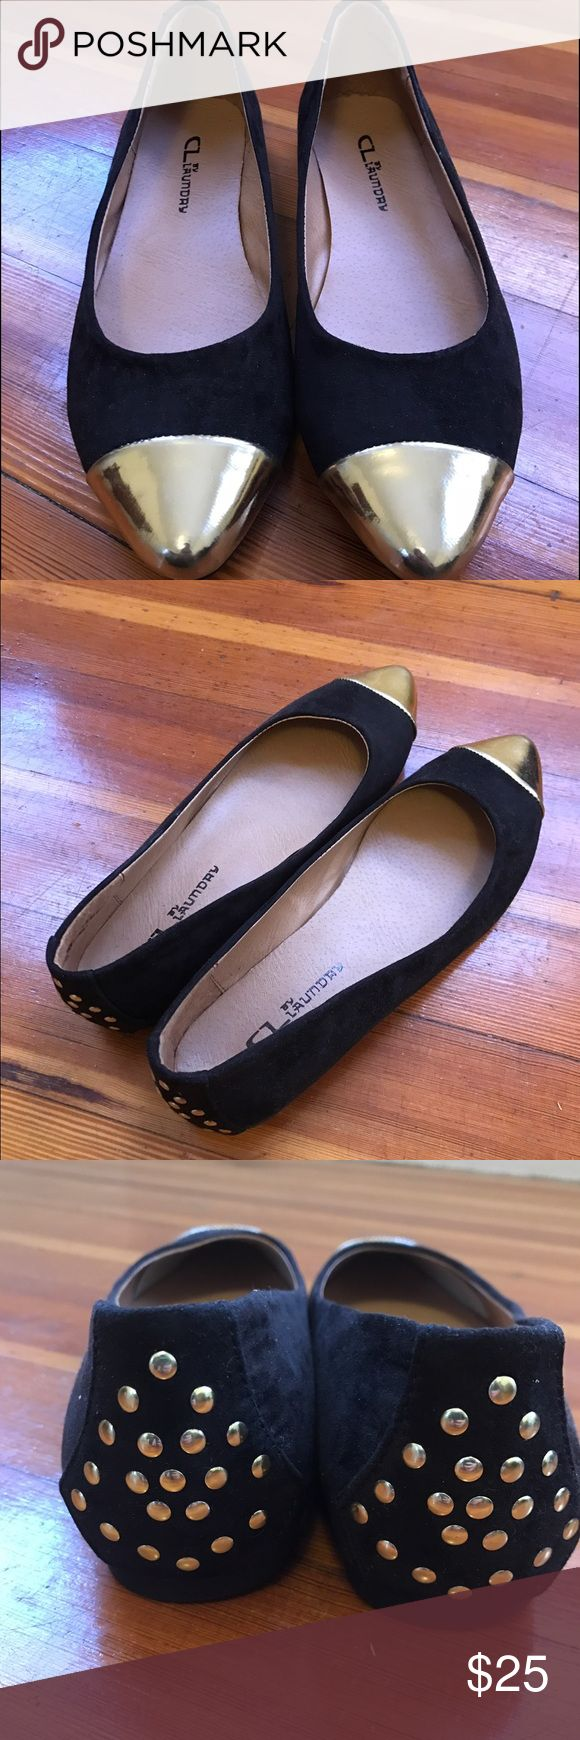 CL Gold Cap Toe Black Flats Brand new (never worn) pair of gold cap toe black flats. Chinese Laundry Shoes Flats & Loafers